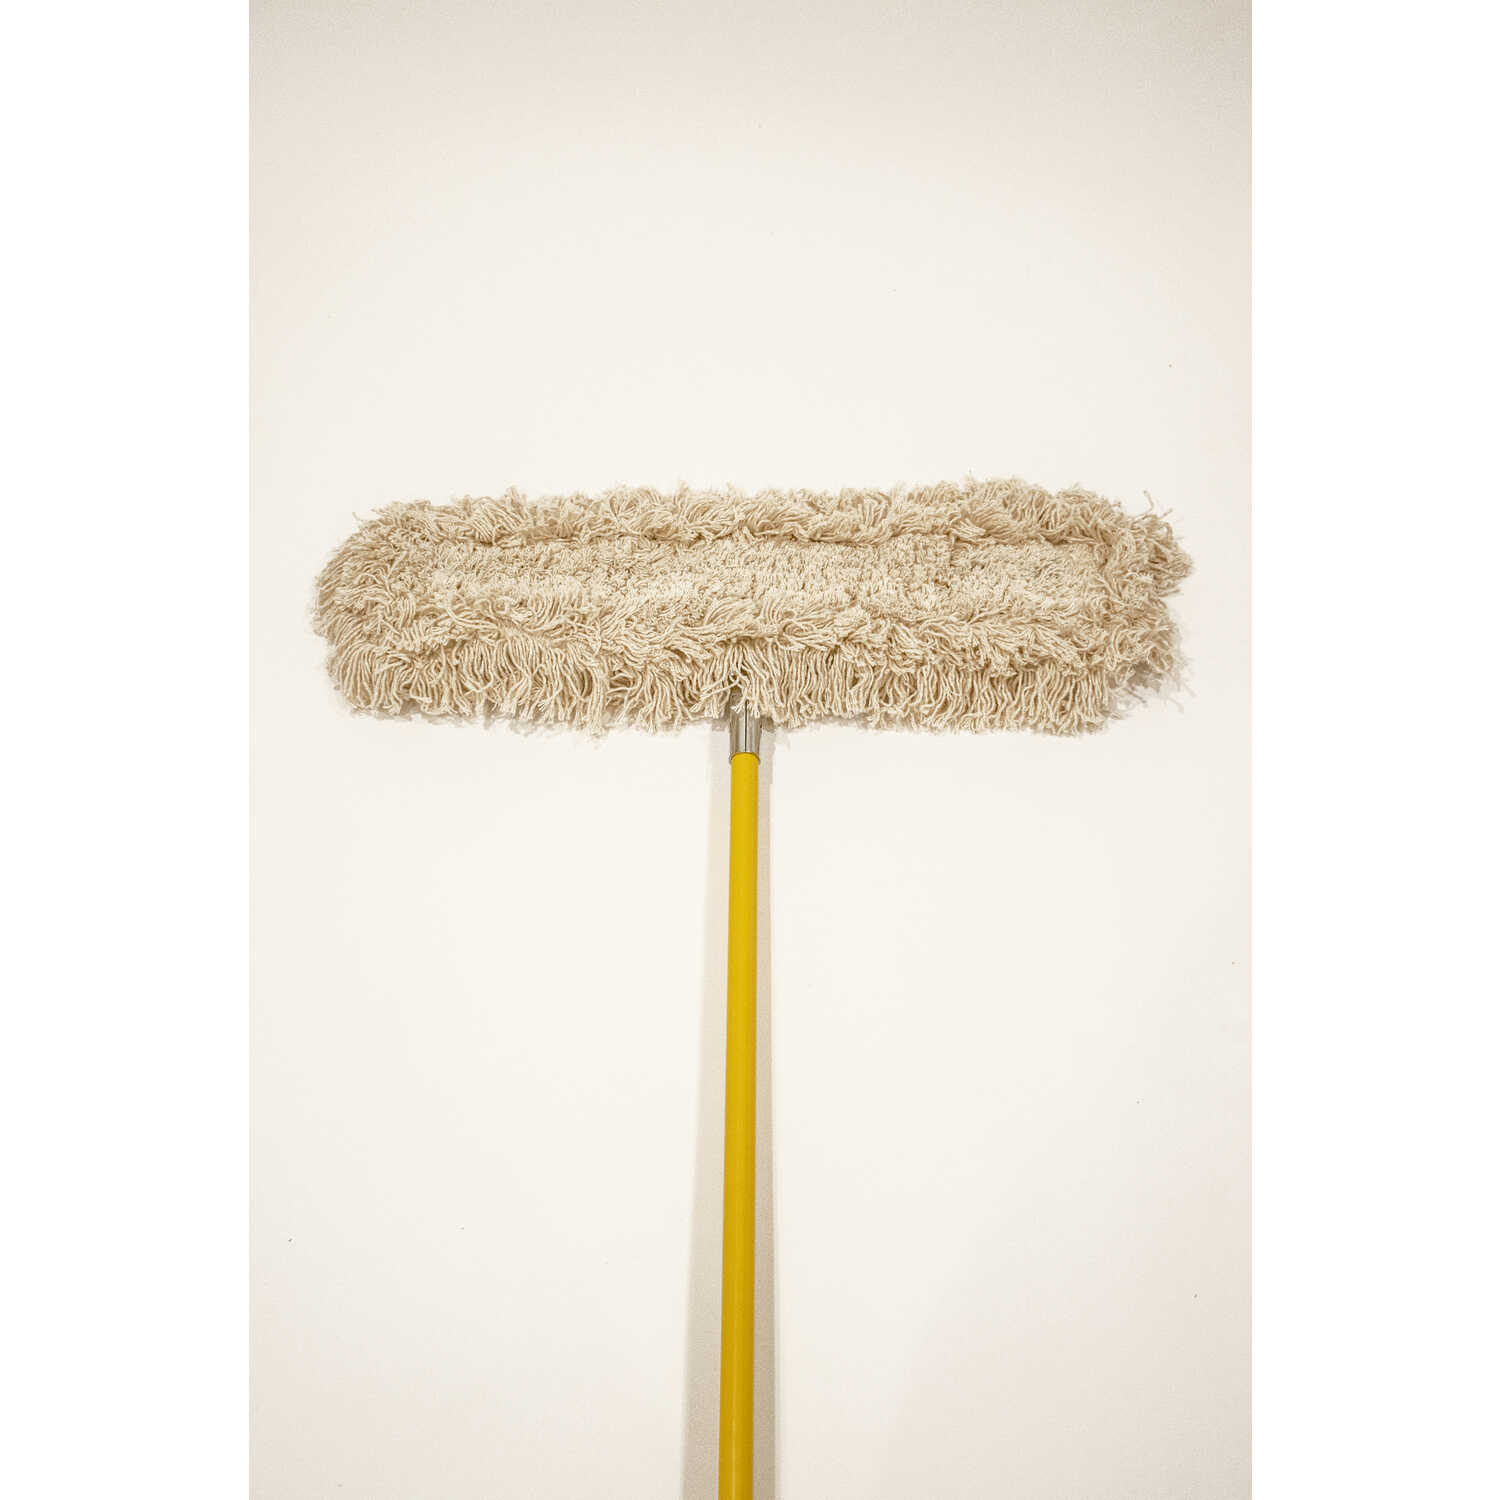 Lanier 4-Ply Cotton Dust Mop Refill 1 pk - Ace Hardware